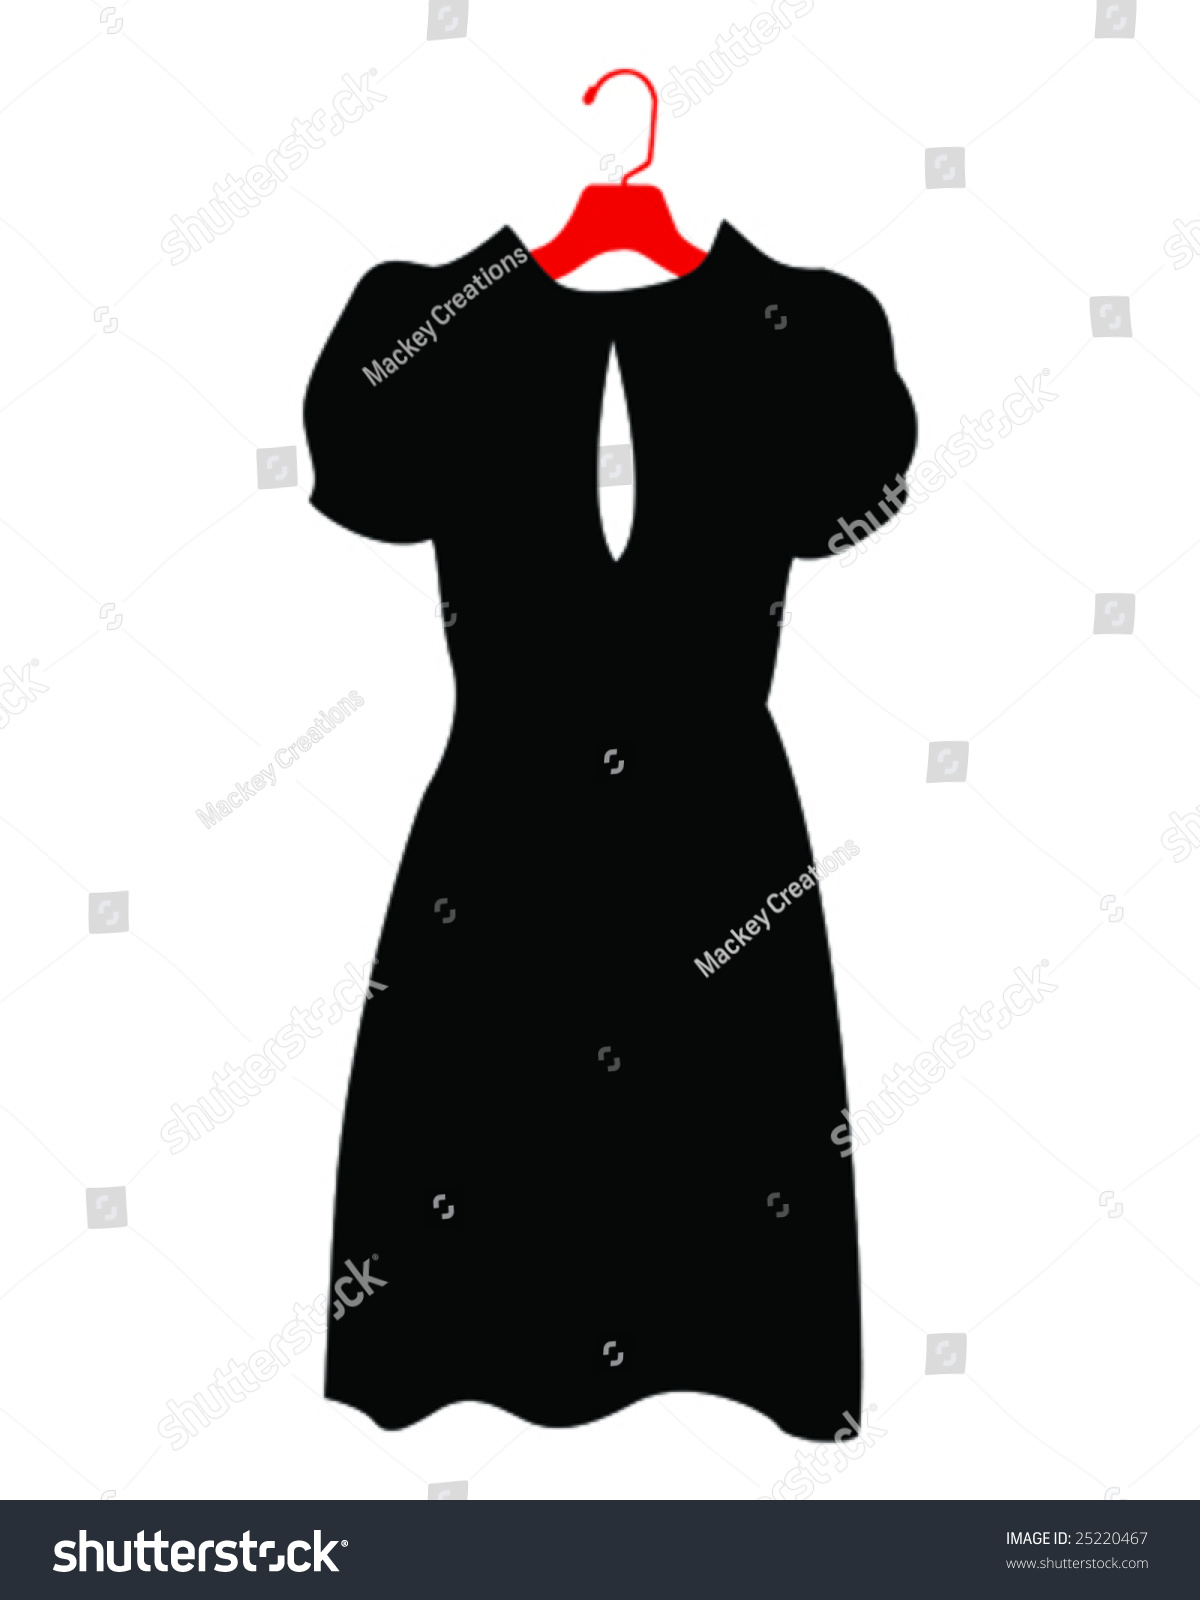 Black dress cartoon - Black Dress On Hanger